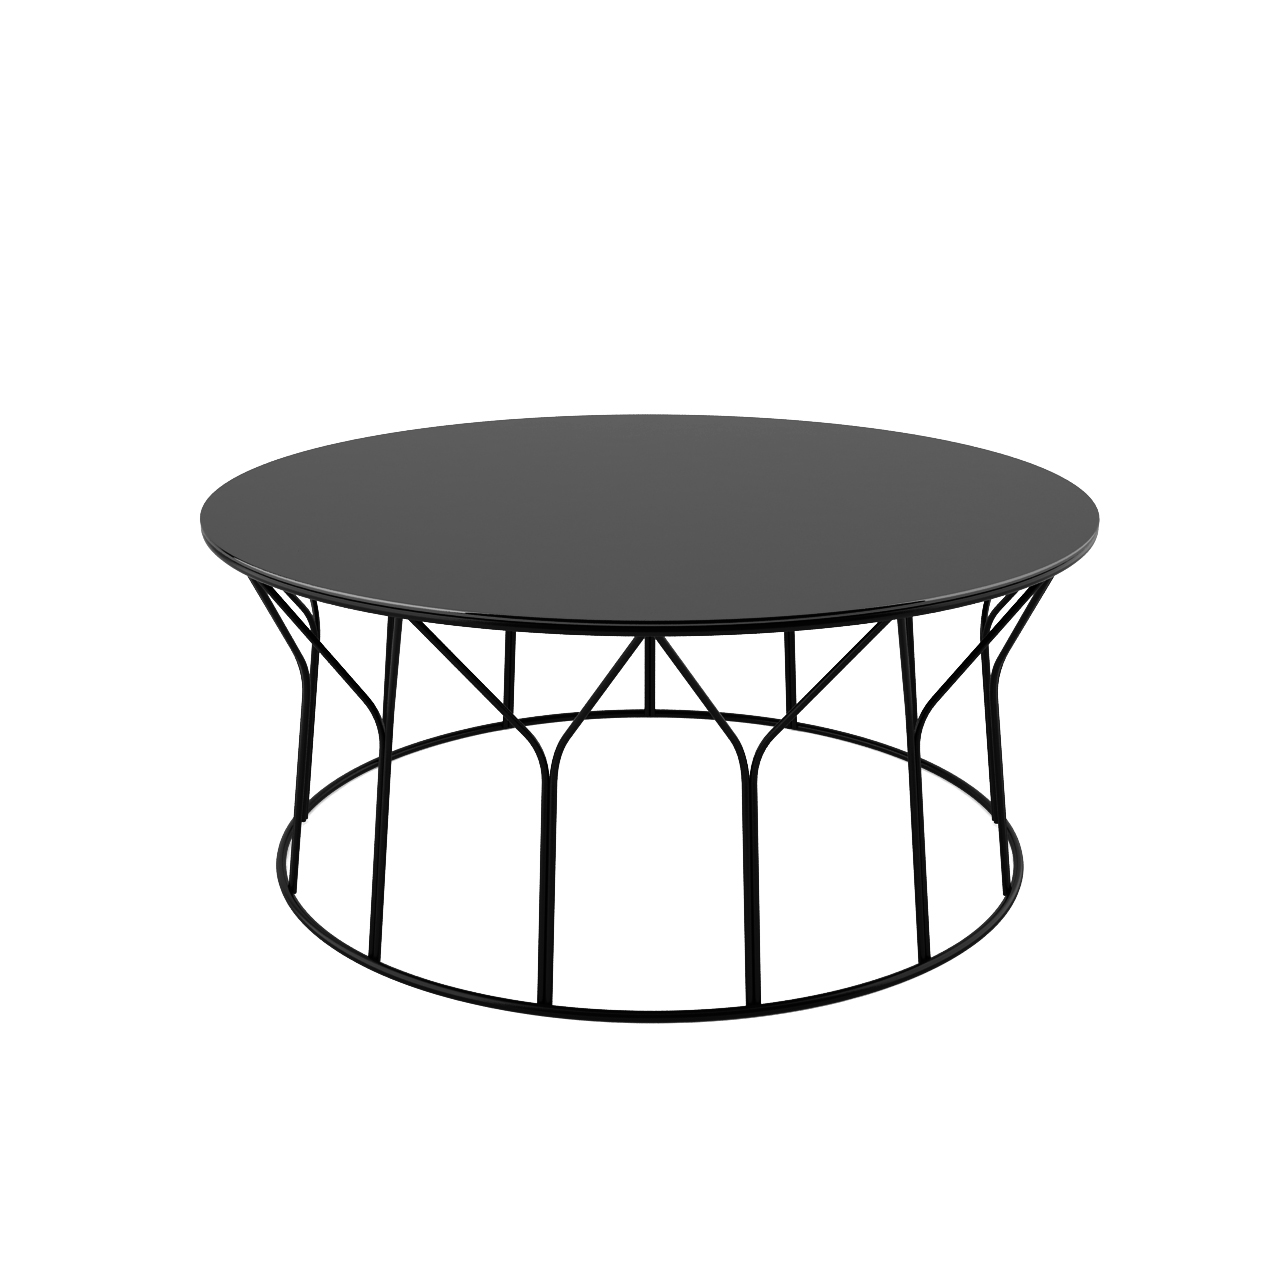 Circus Table By Offecct Dimensiva